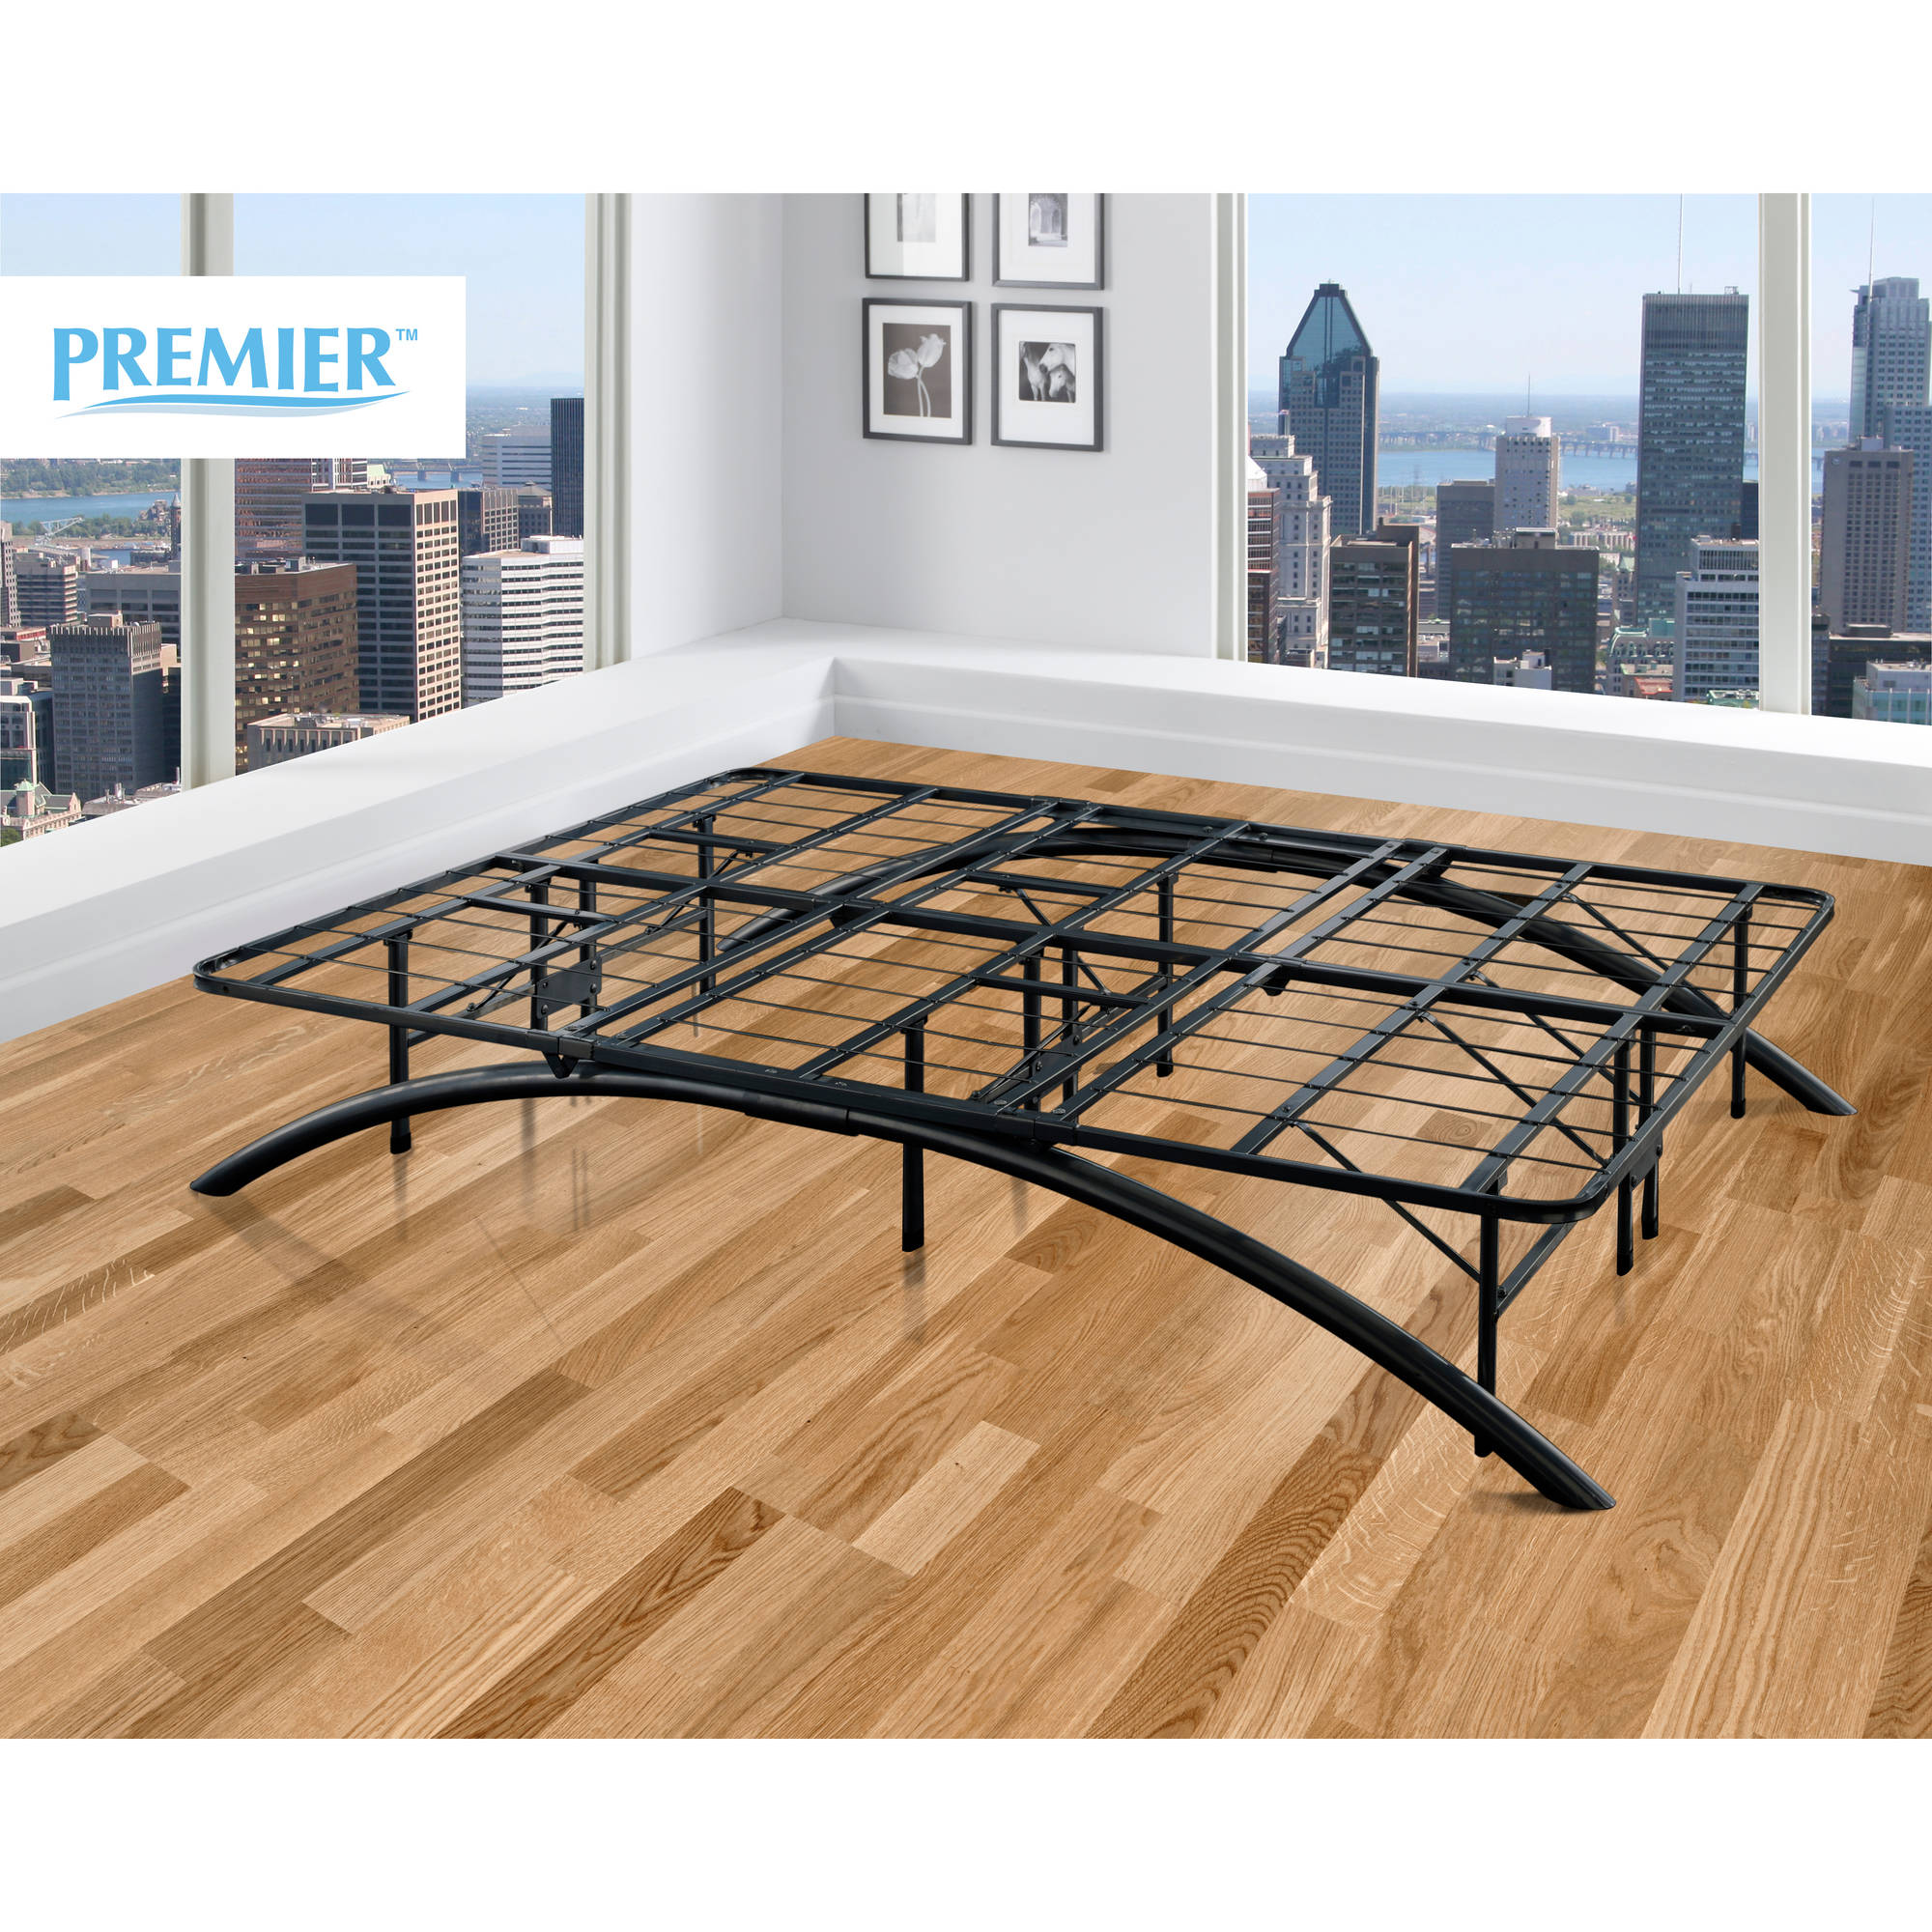 Premier Ellipse Arch Platform Bed Frame Black Multiple Sizes